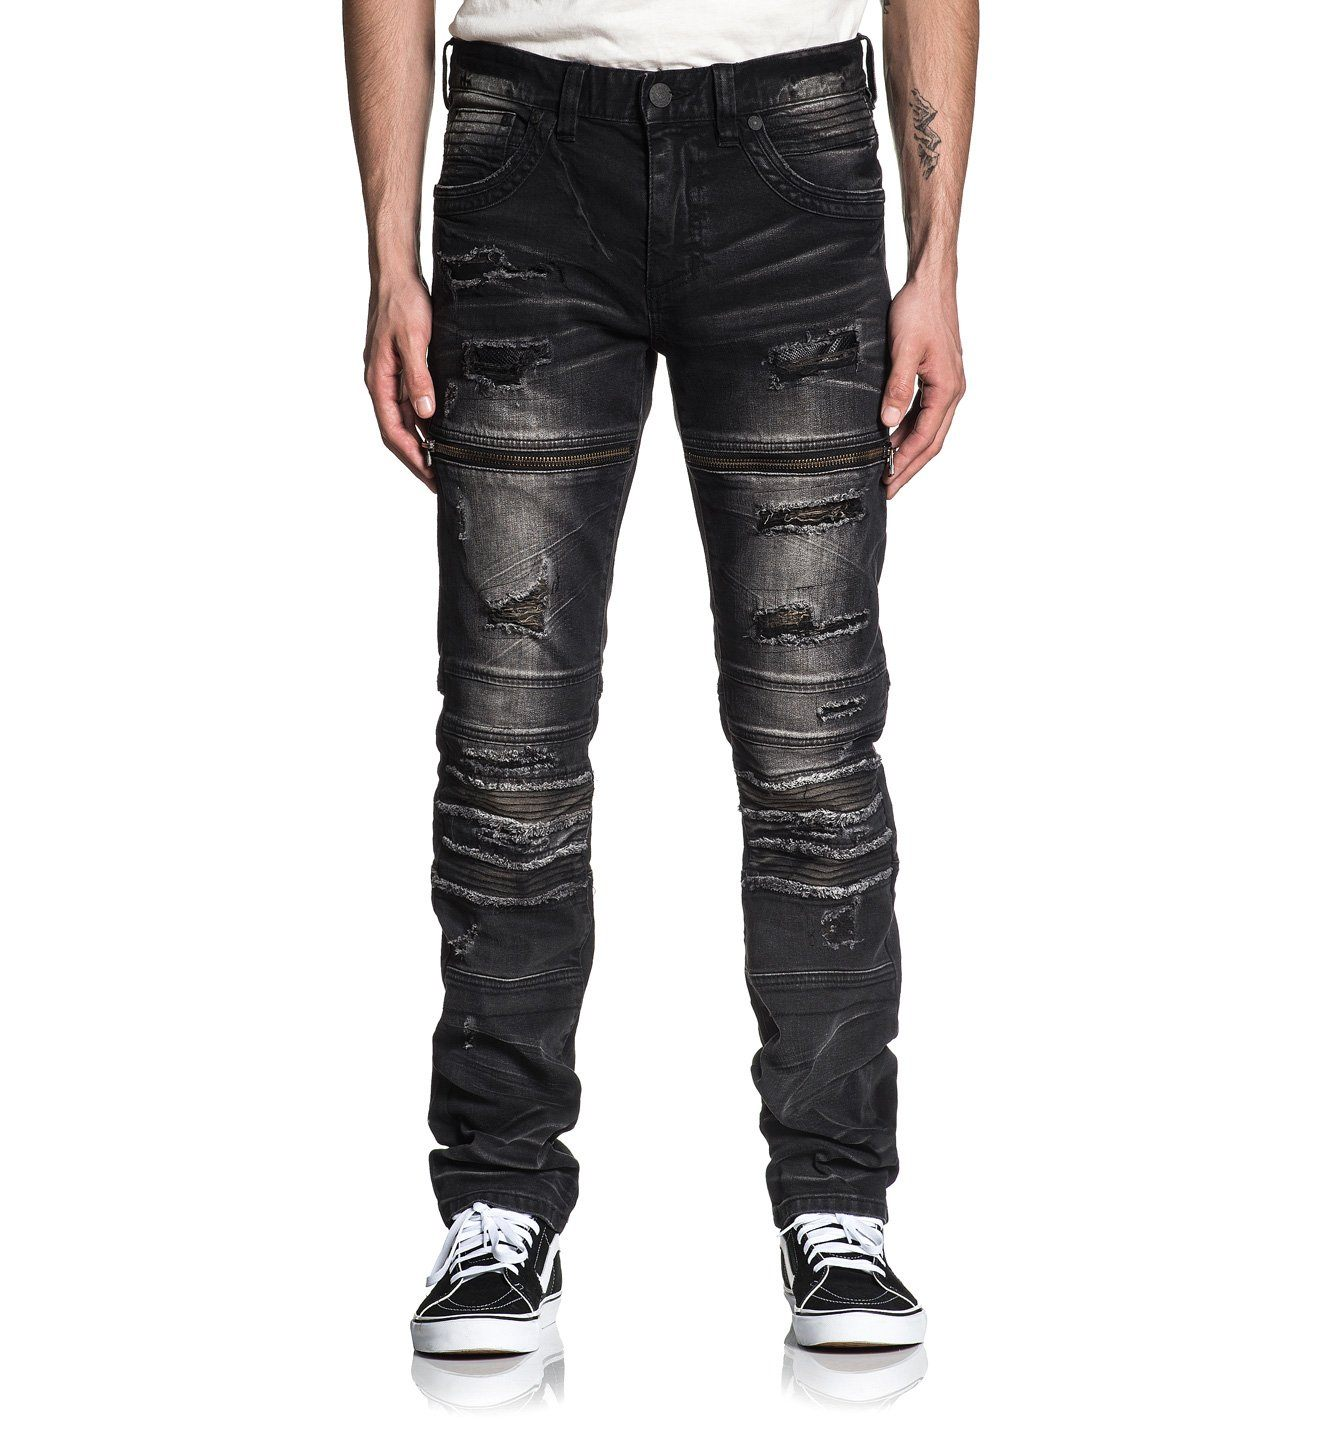 Mens Denim Bottoms - Gage Fallen Jasper